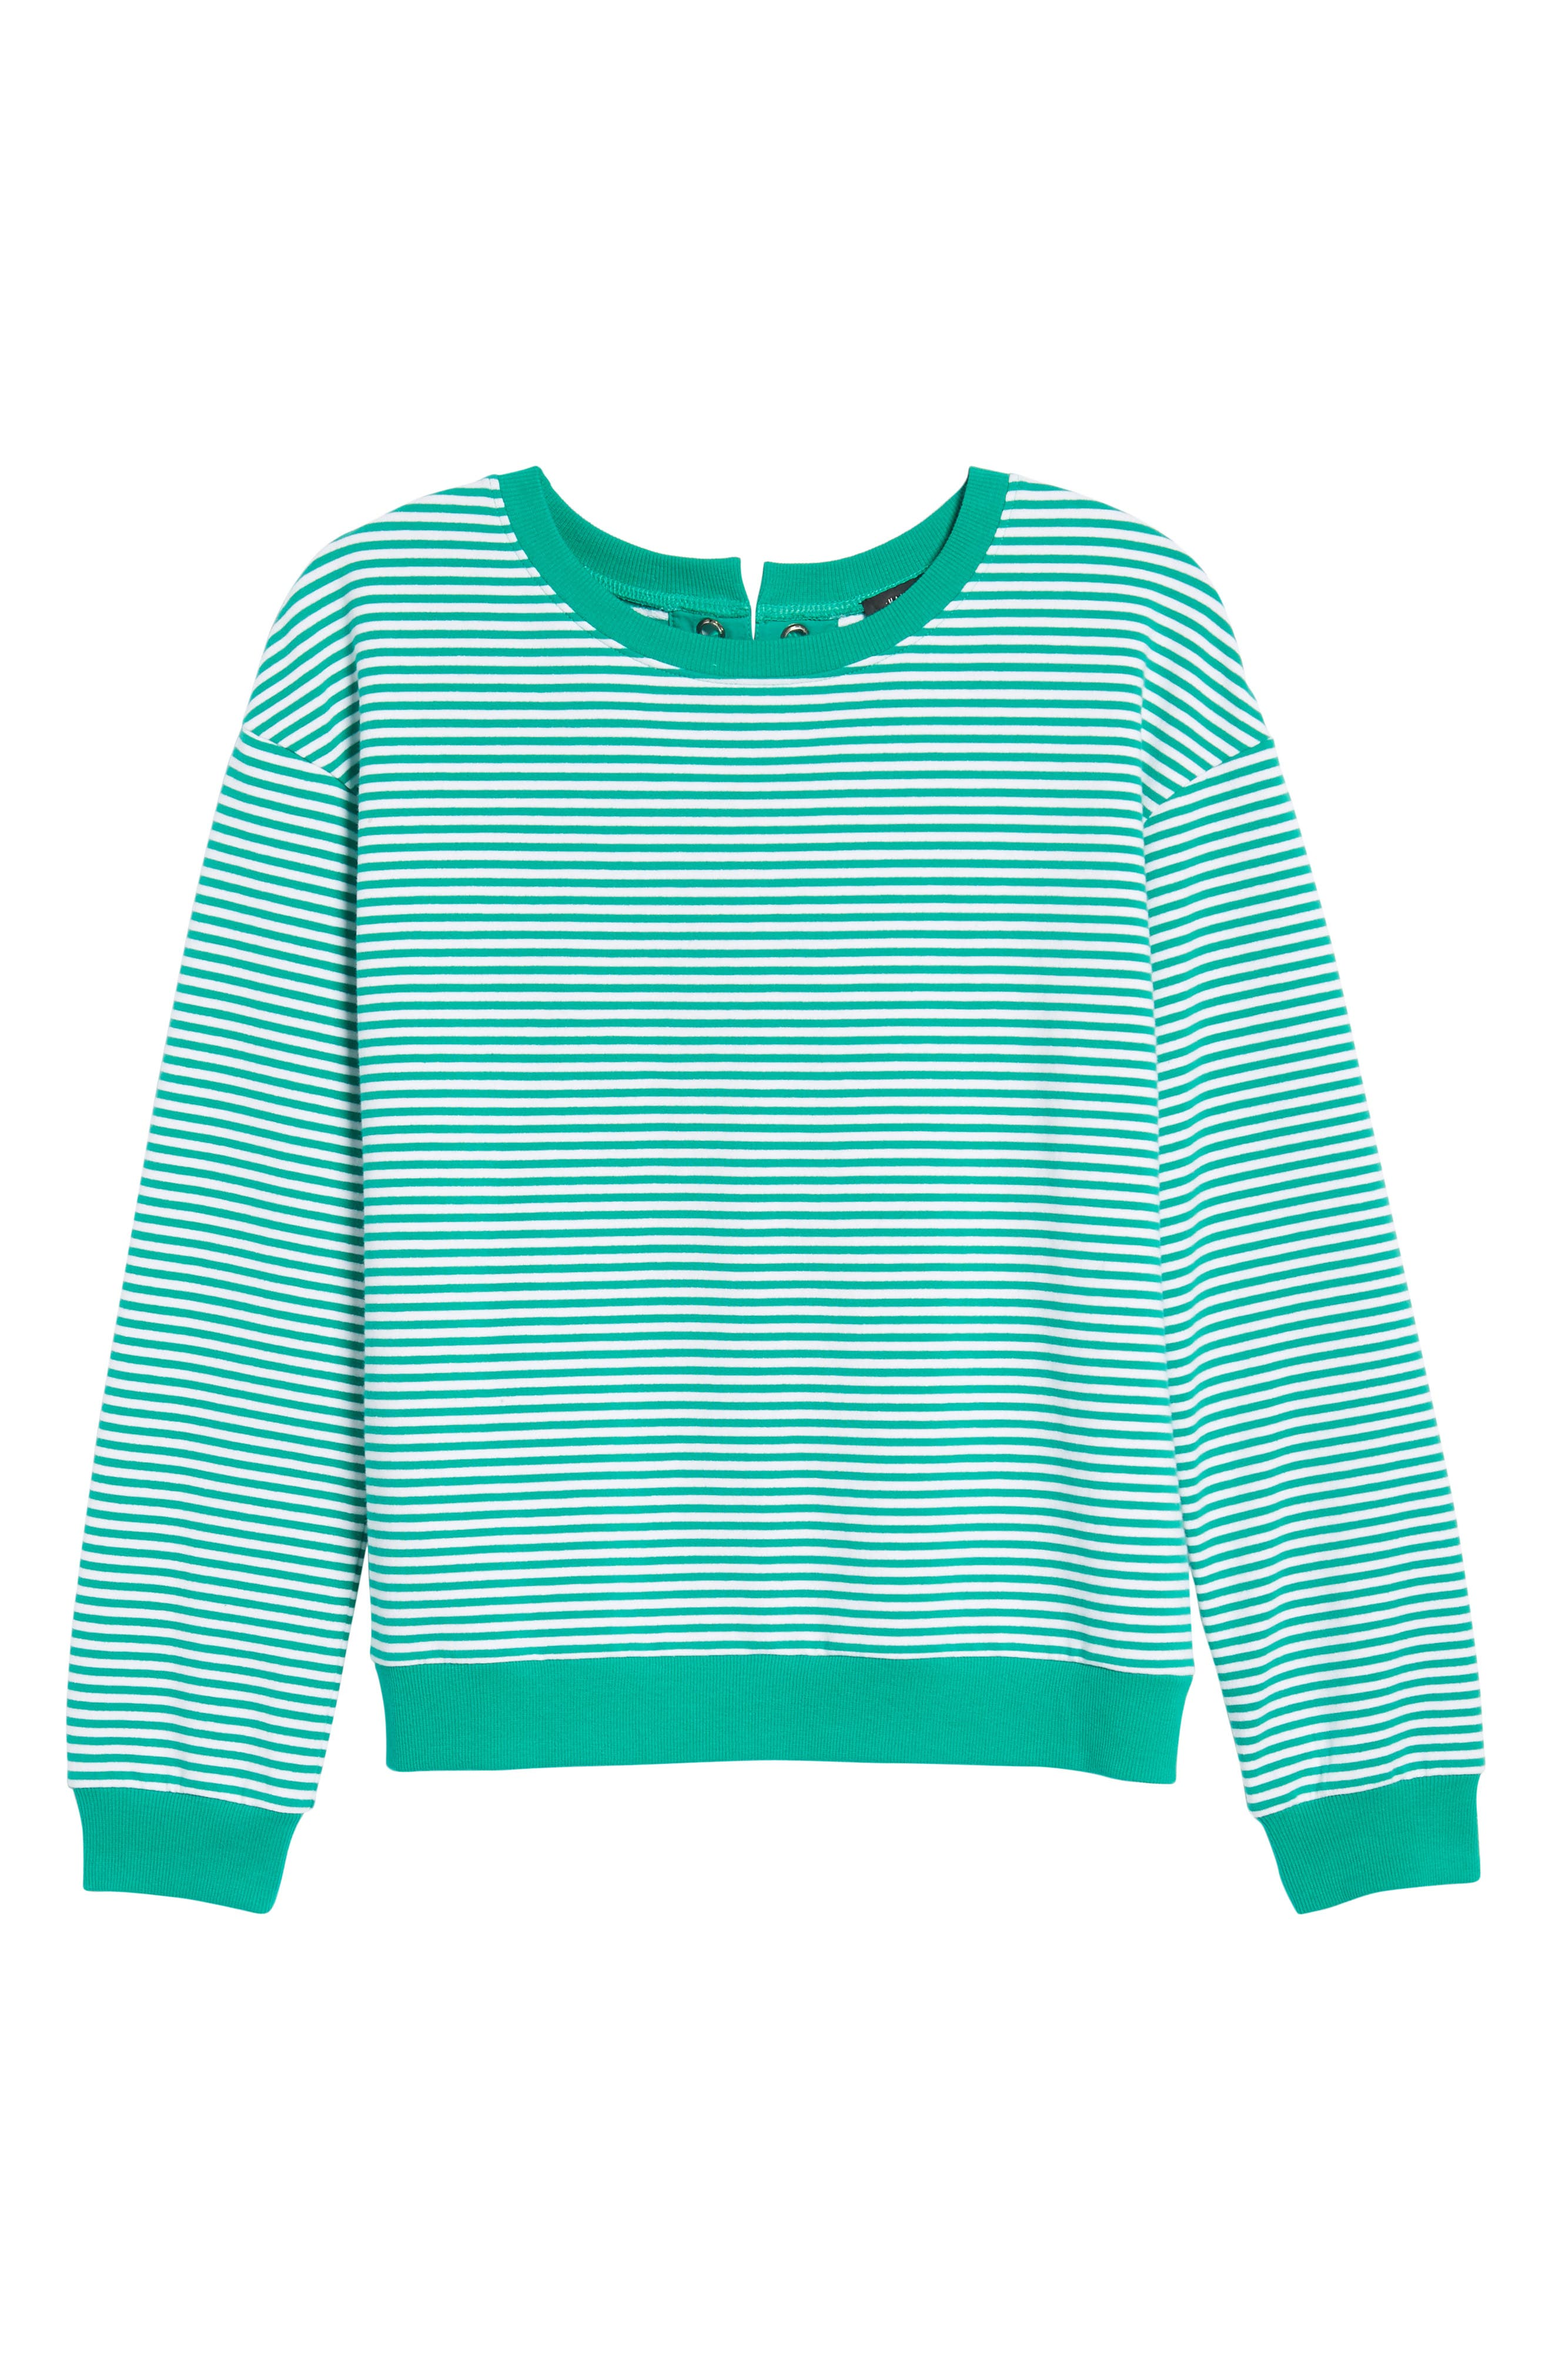 Lace-Up Knit Top,                             Alternate thumbnail 7, color,                             Green- White Stripe